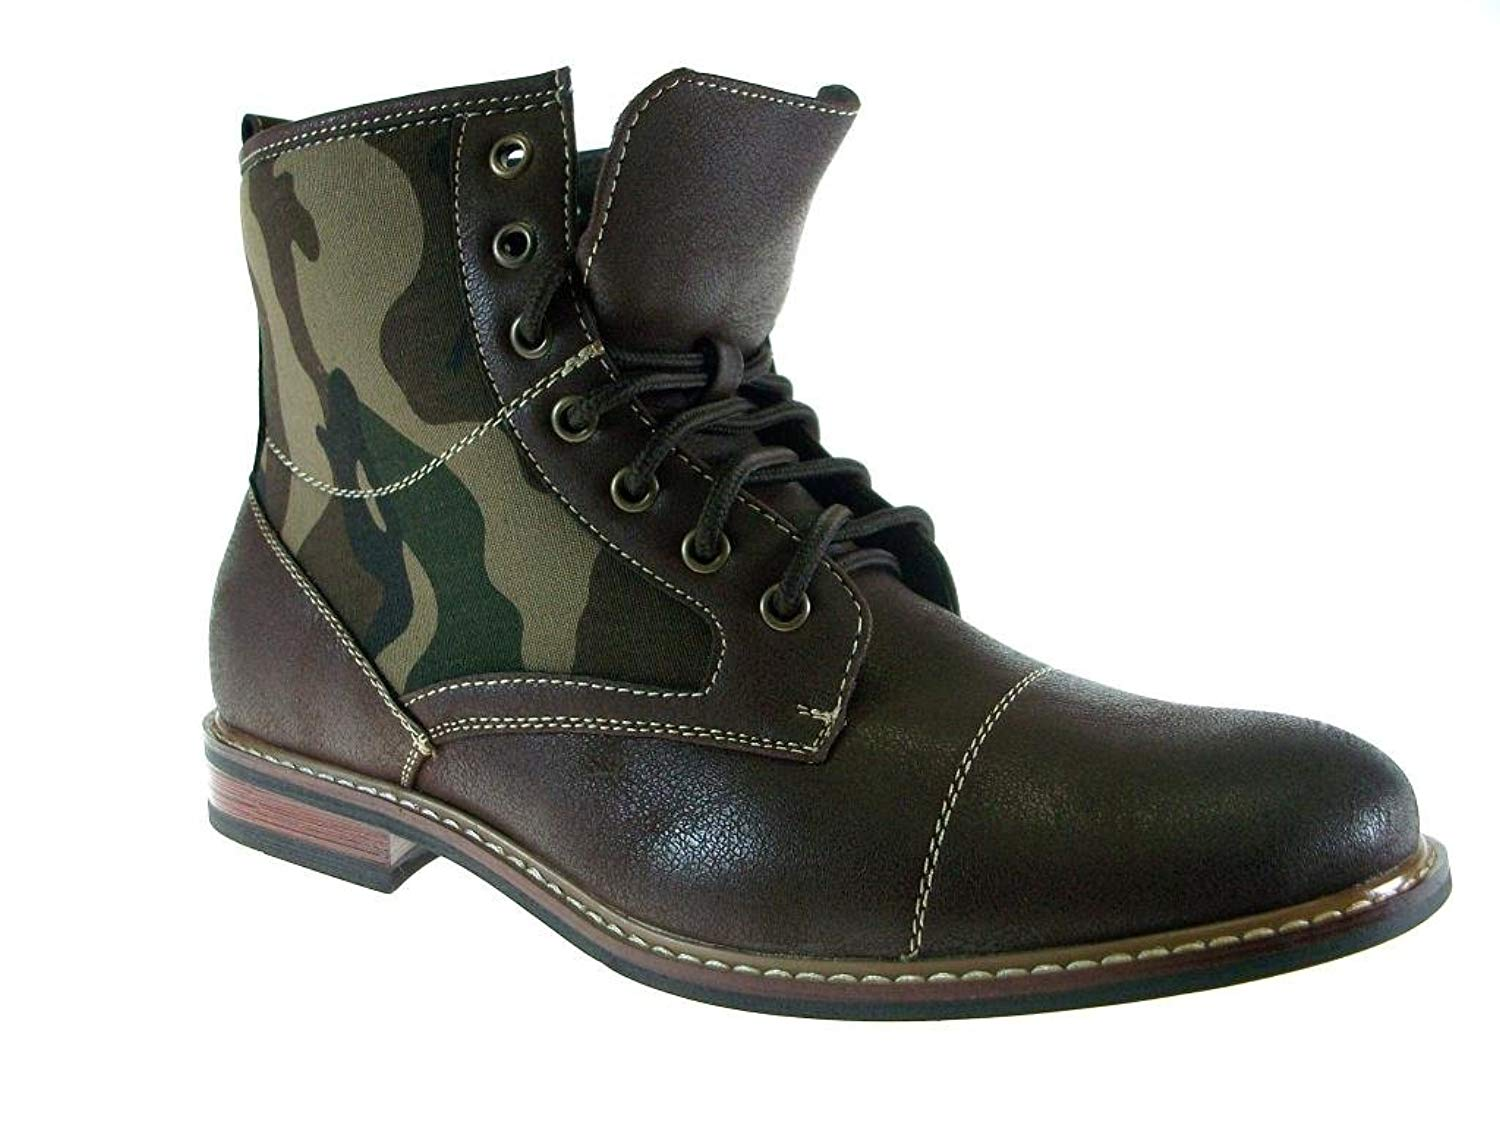 f178610bd36e Get Quotations · Ferro Aldo Men s 808562A Camouflage Print Military Style  Combat Dress Boots